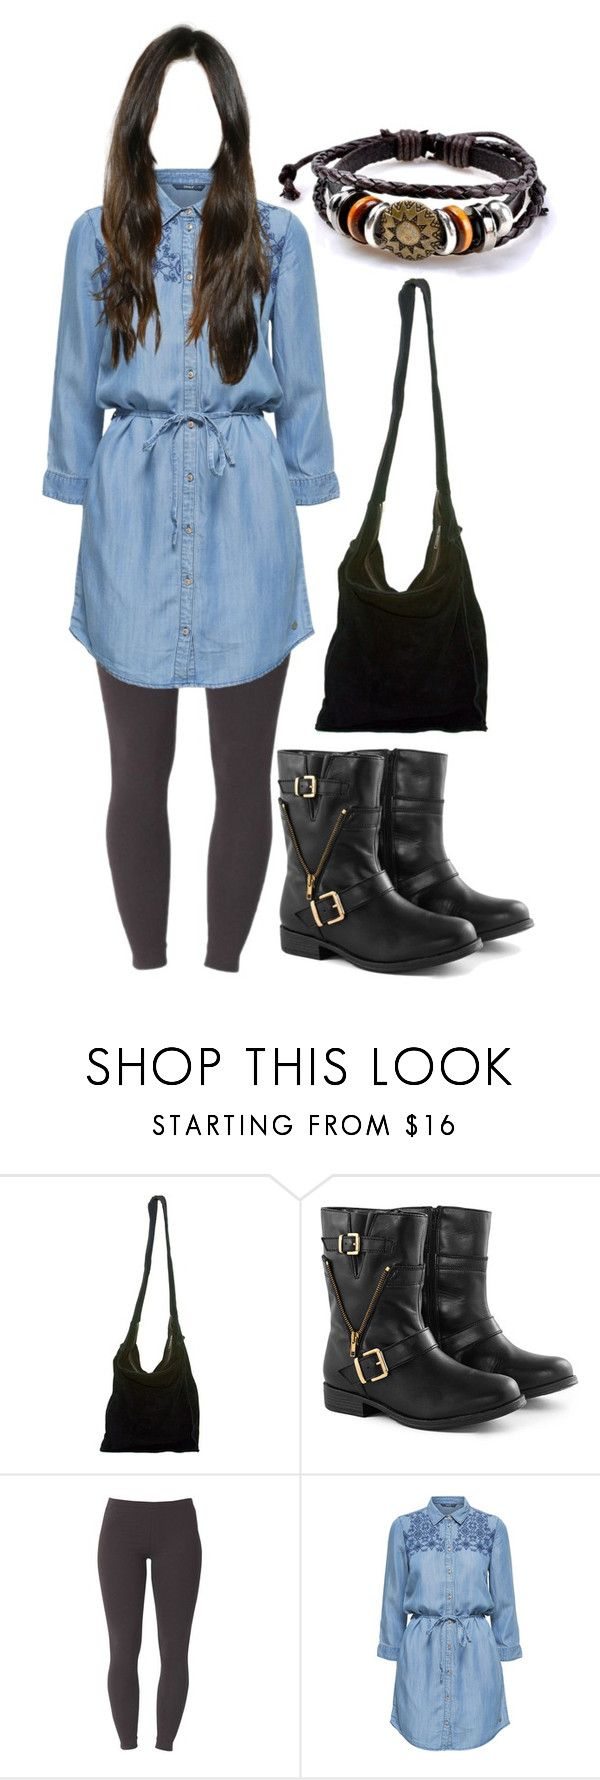 """Untitled #2491"" by jojoenes ❤ liked on Polyvore featuring Acne Studios, Borger Shoes and Joe Browns"